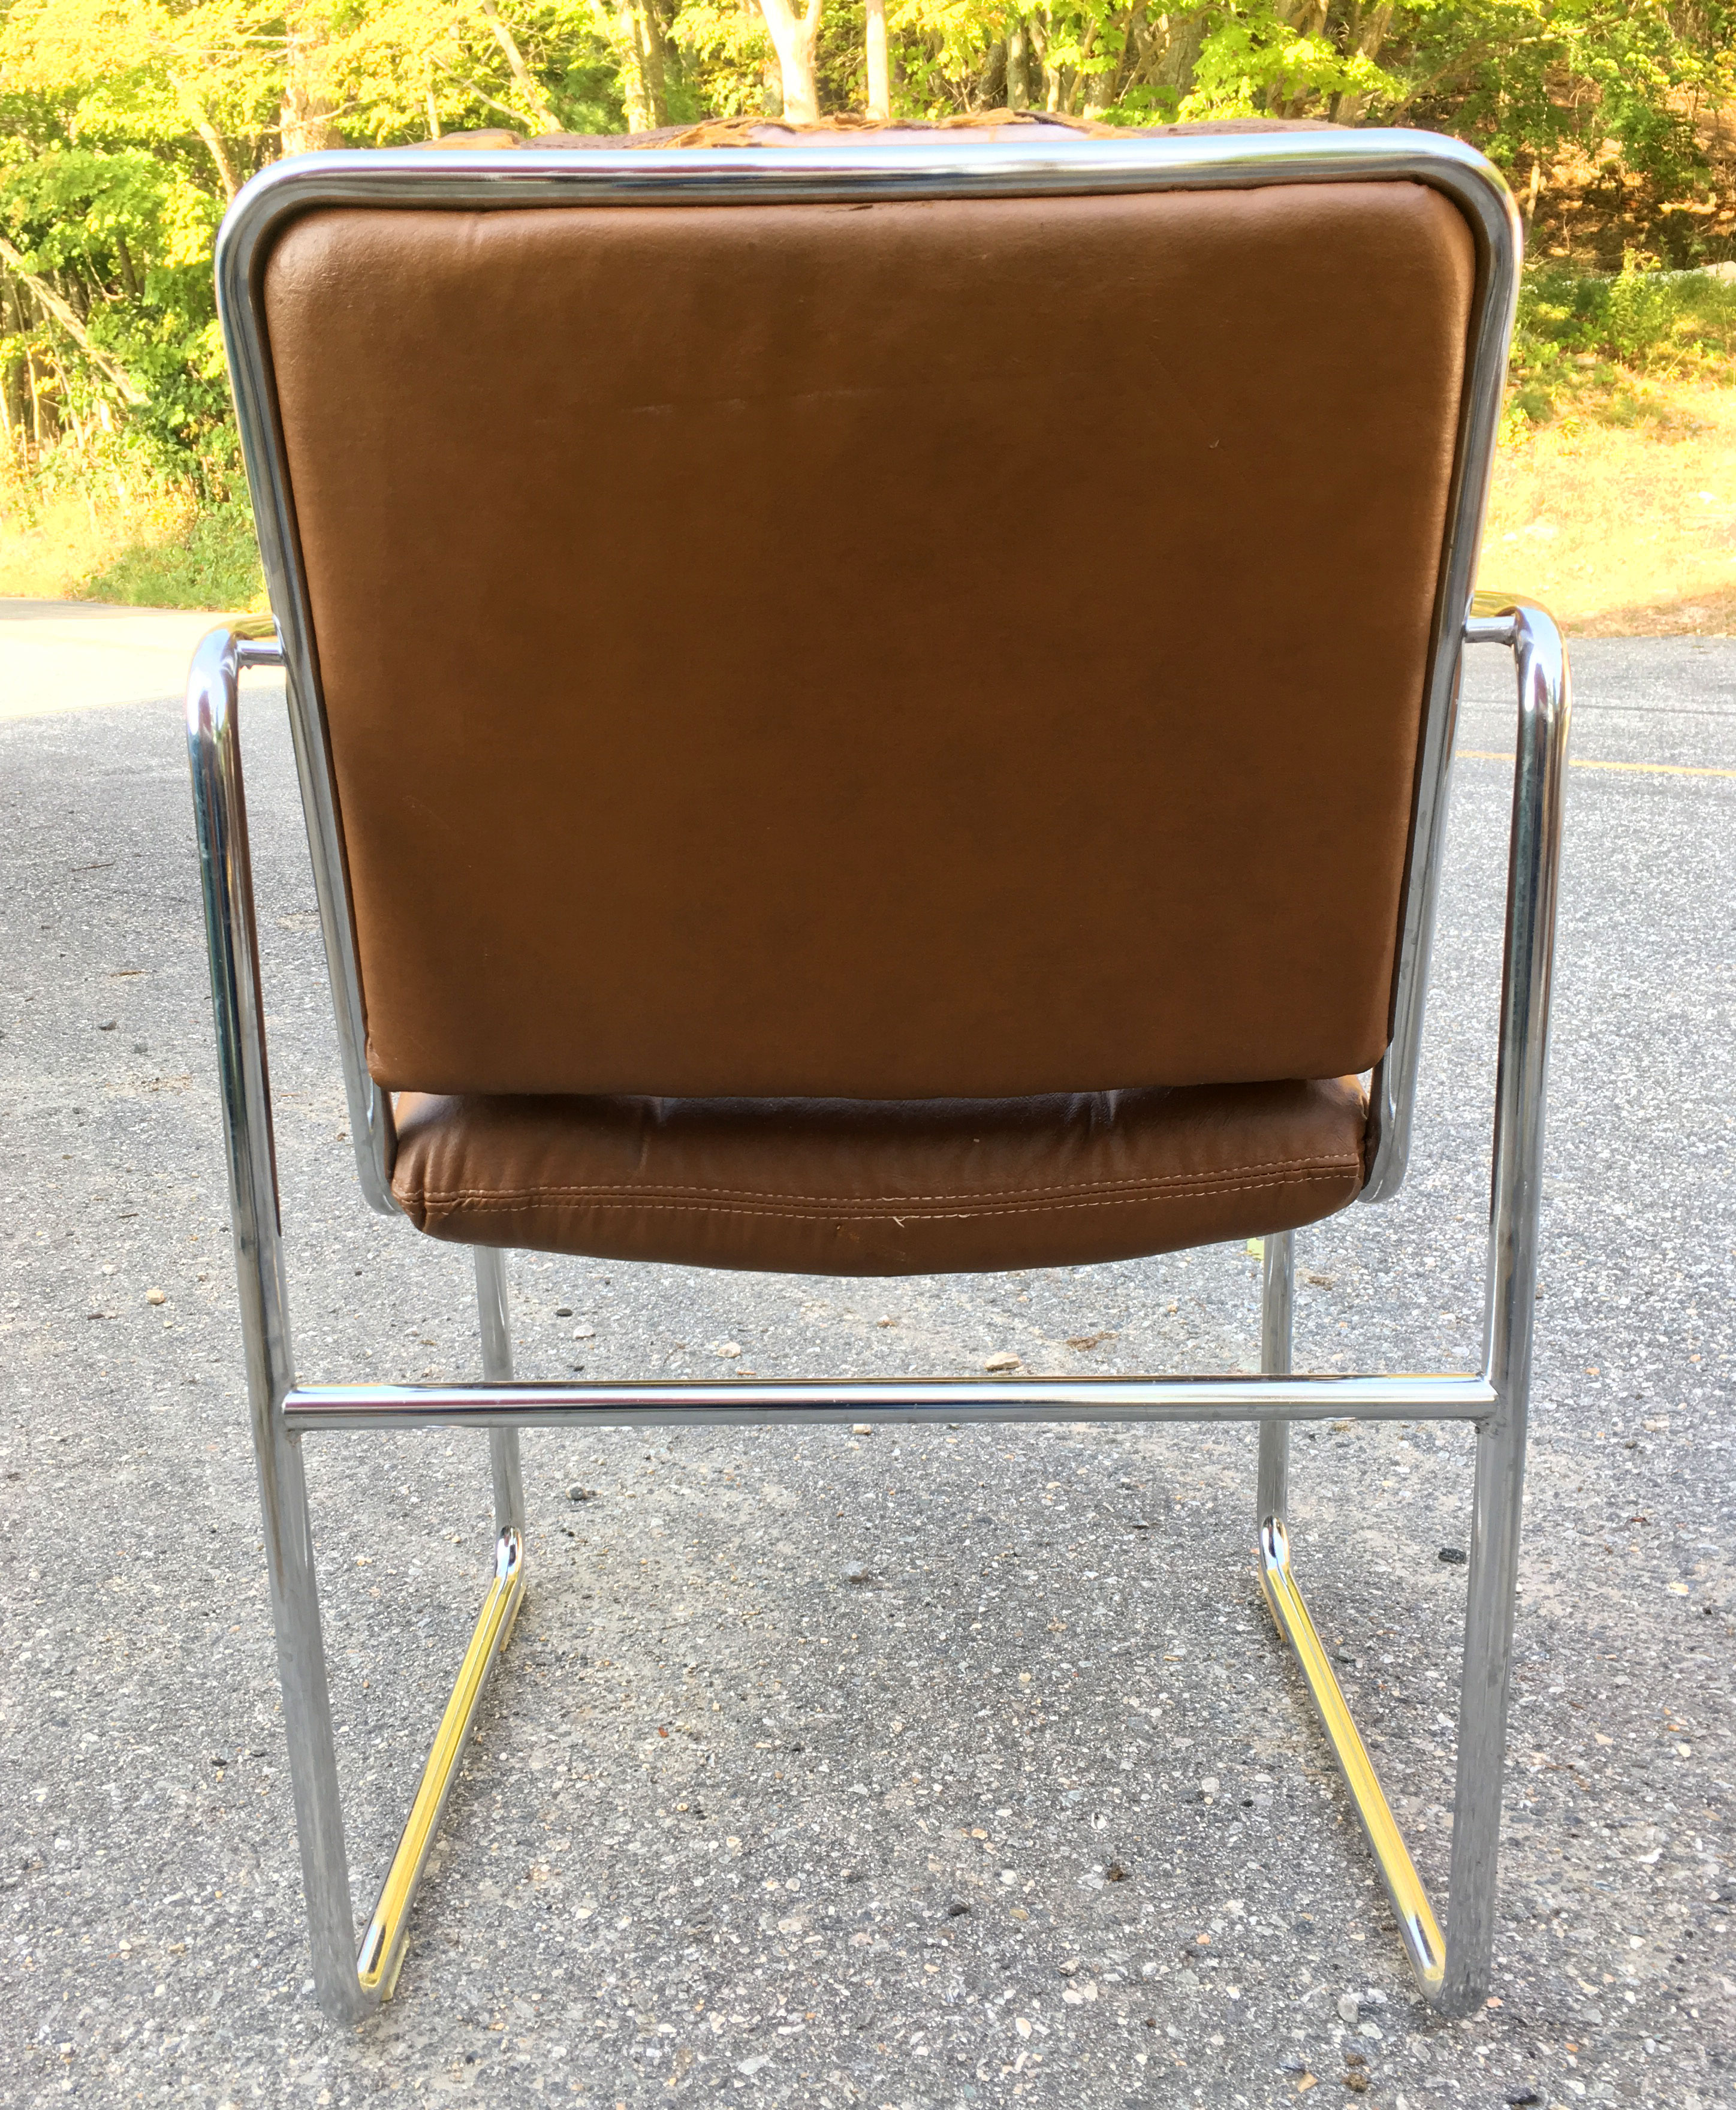 chromcraft furniture kitchen chair with wheels pass through window set of 4 tubular chrome dining chairs  atomic flat